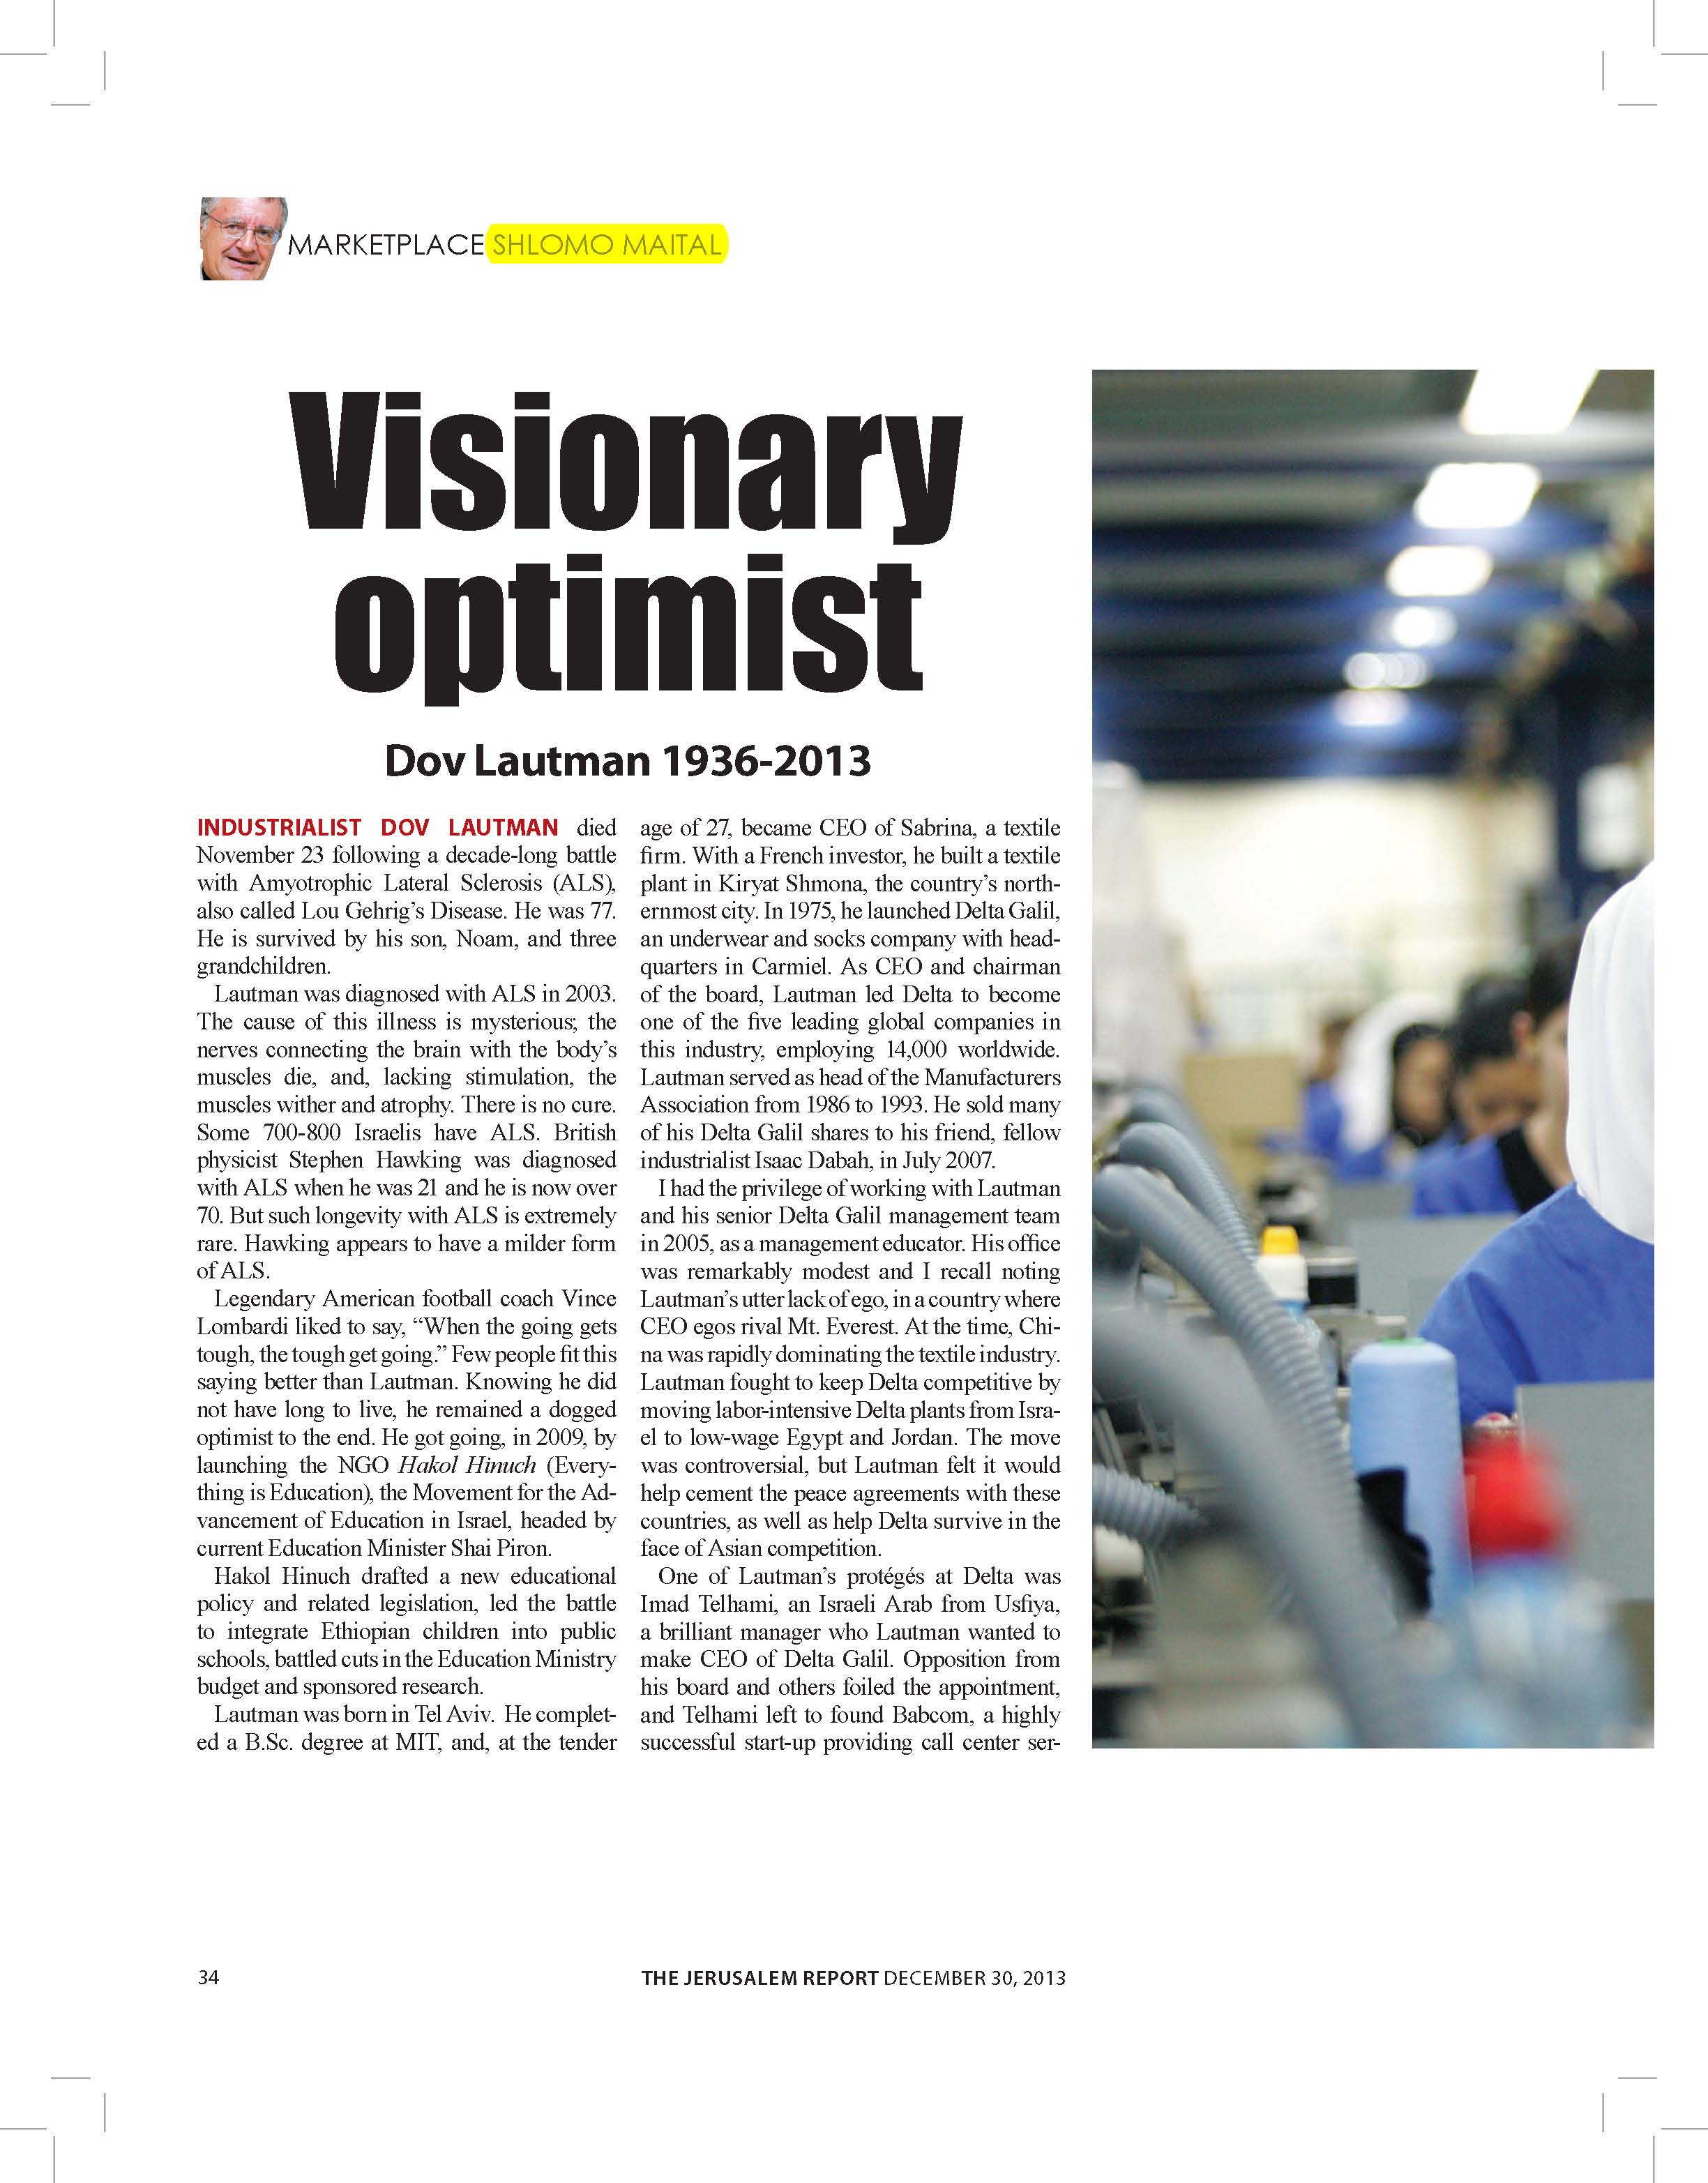 Visionary optimist - Dov Lautman 1936-2013